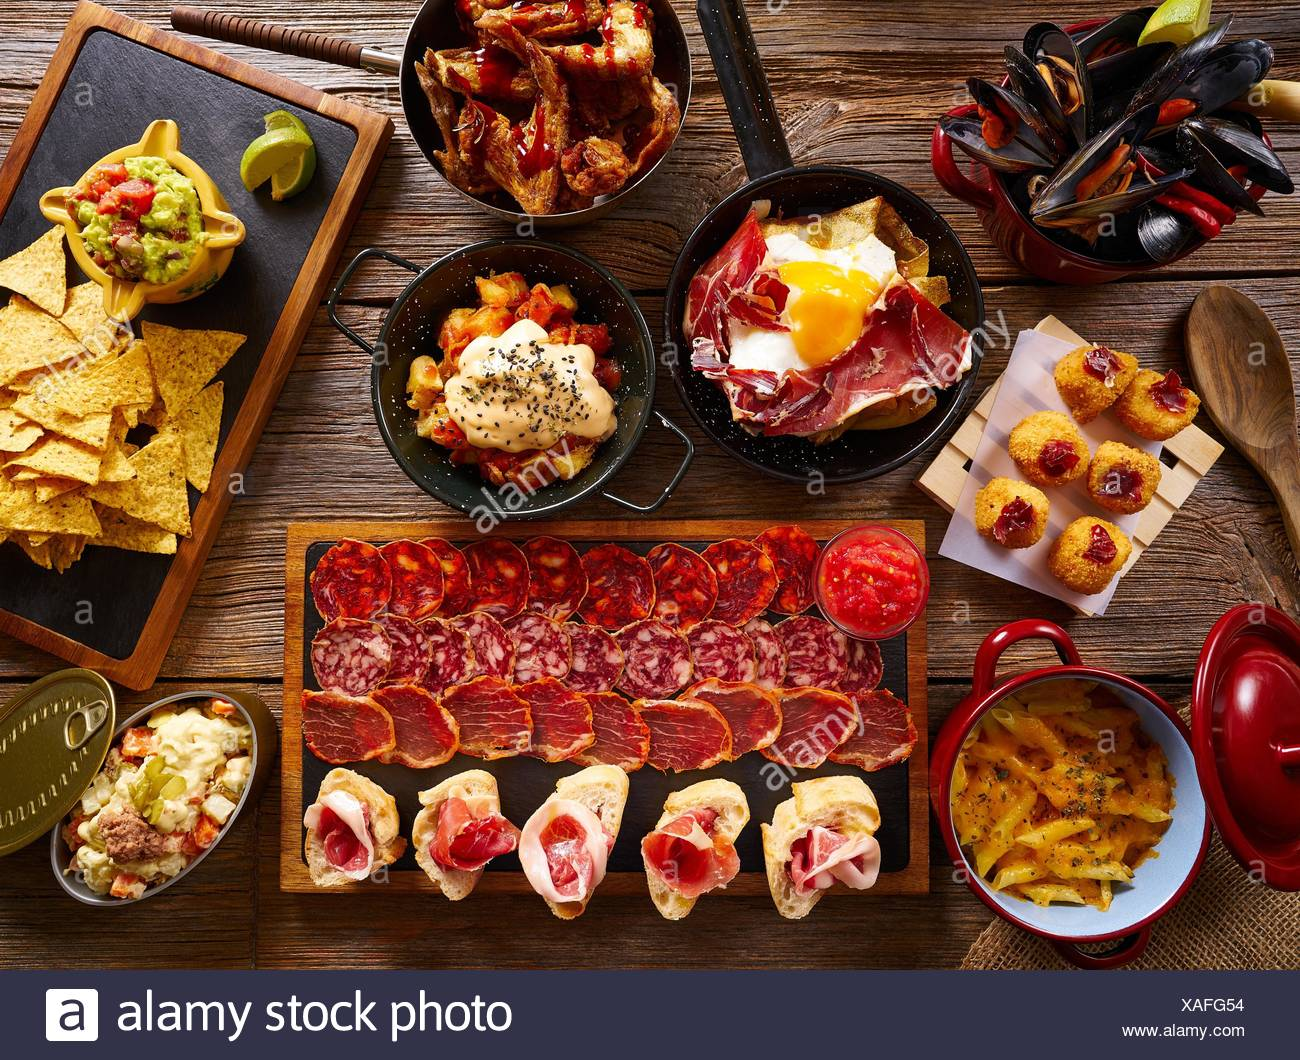 Tapas from Spain varied mix of Mediterranean food recipes. - Stock Image